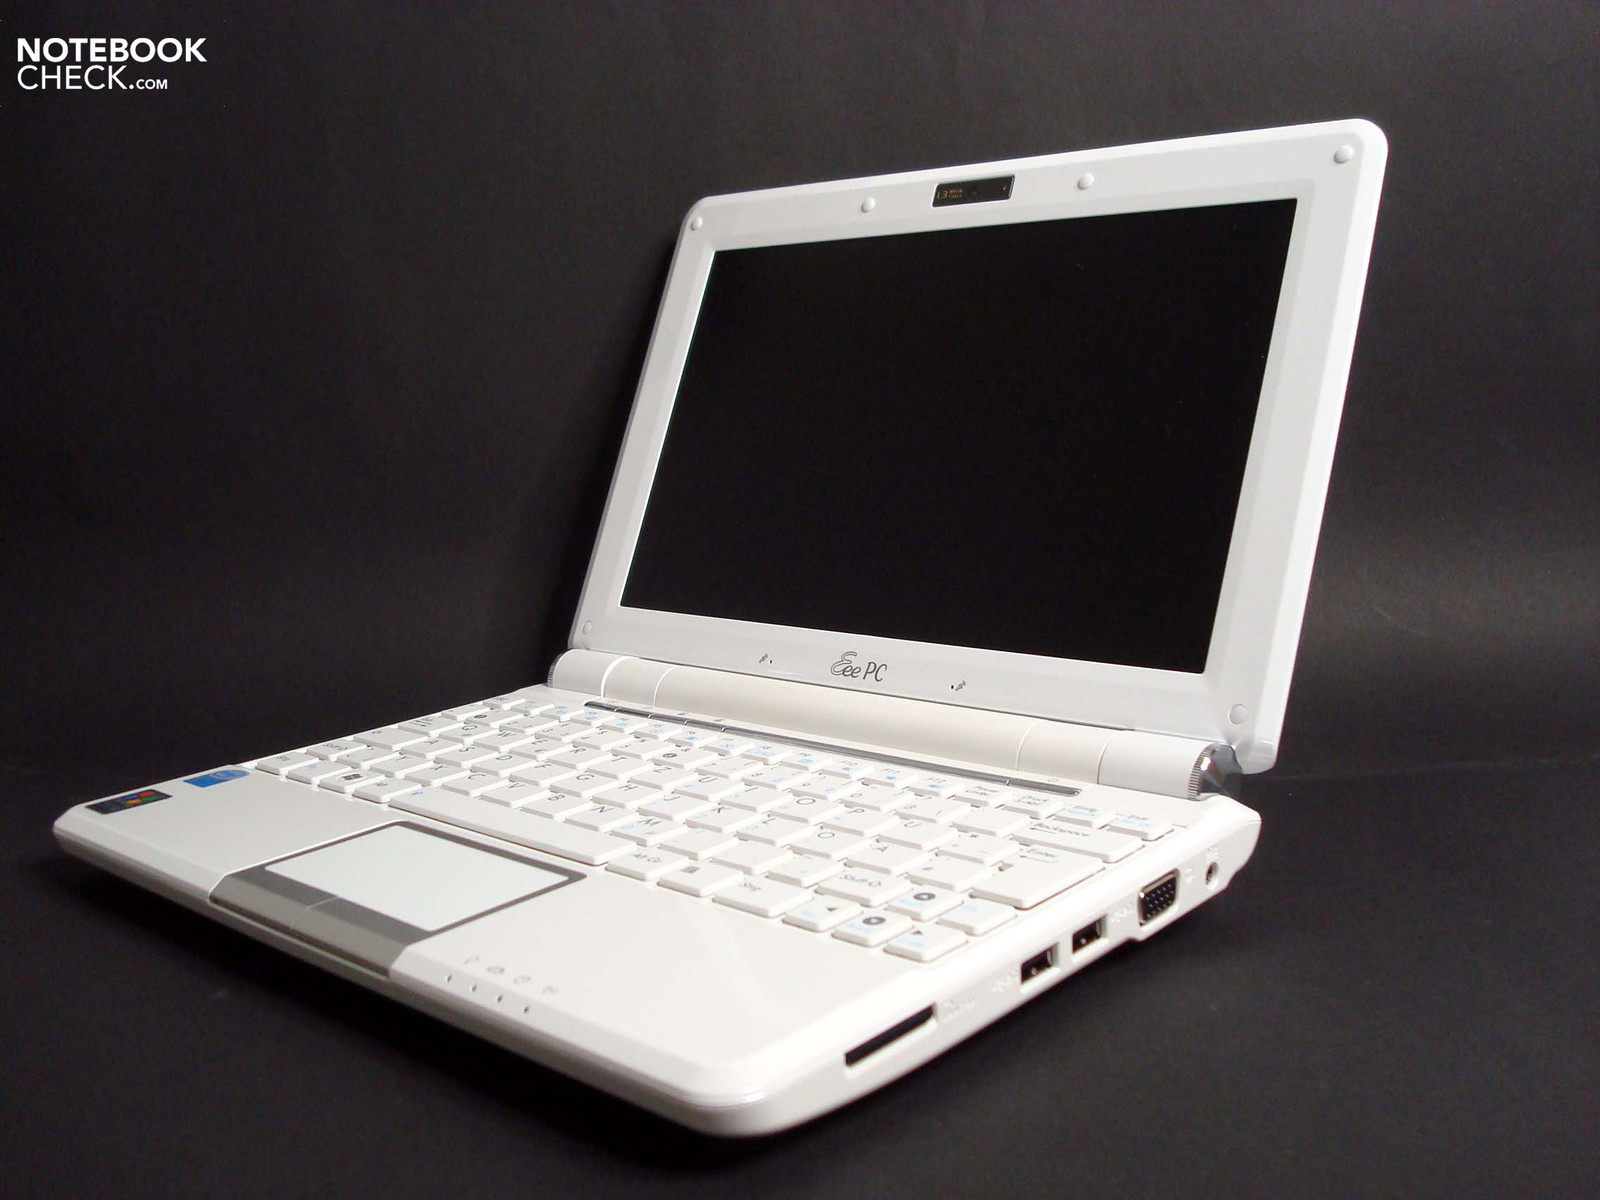 ASUS EEE PC 1000HE TREIBER WINDOWS XP